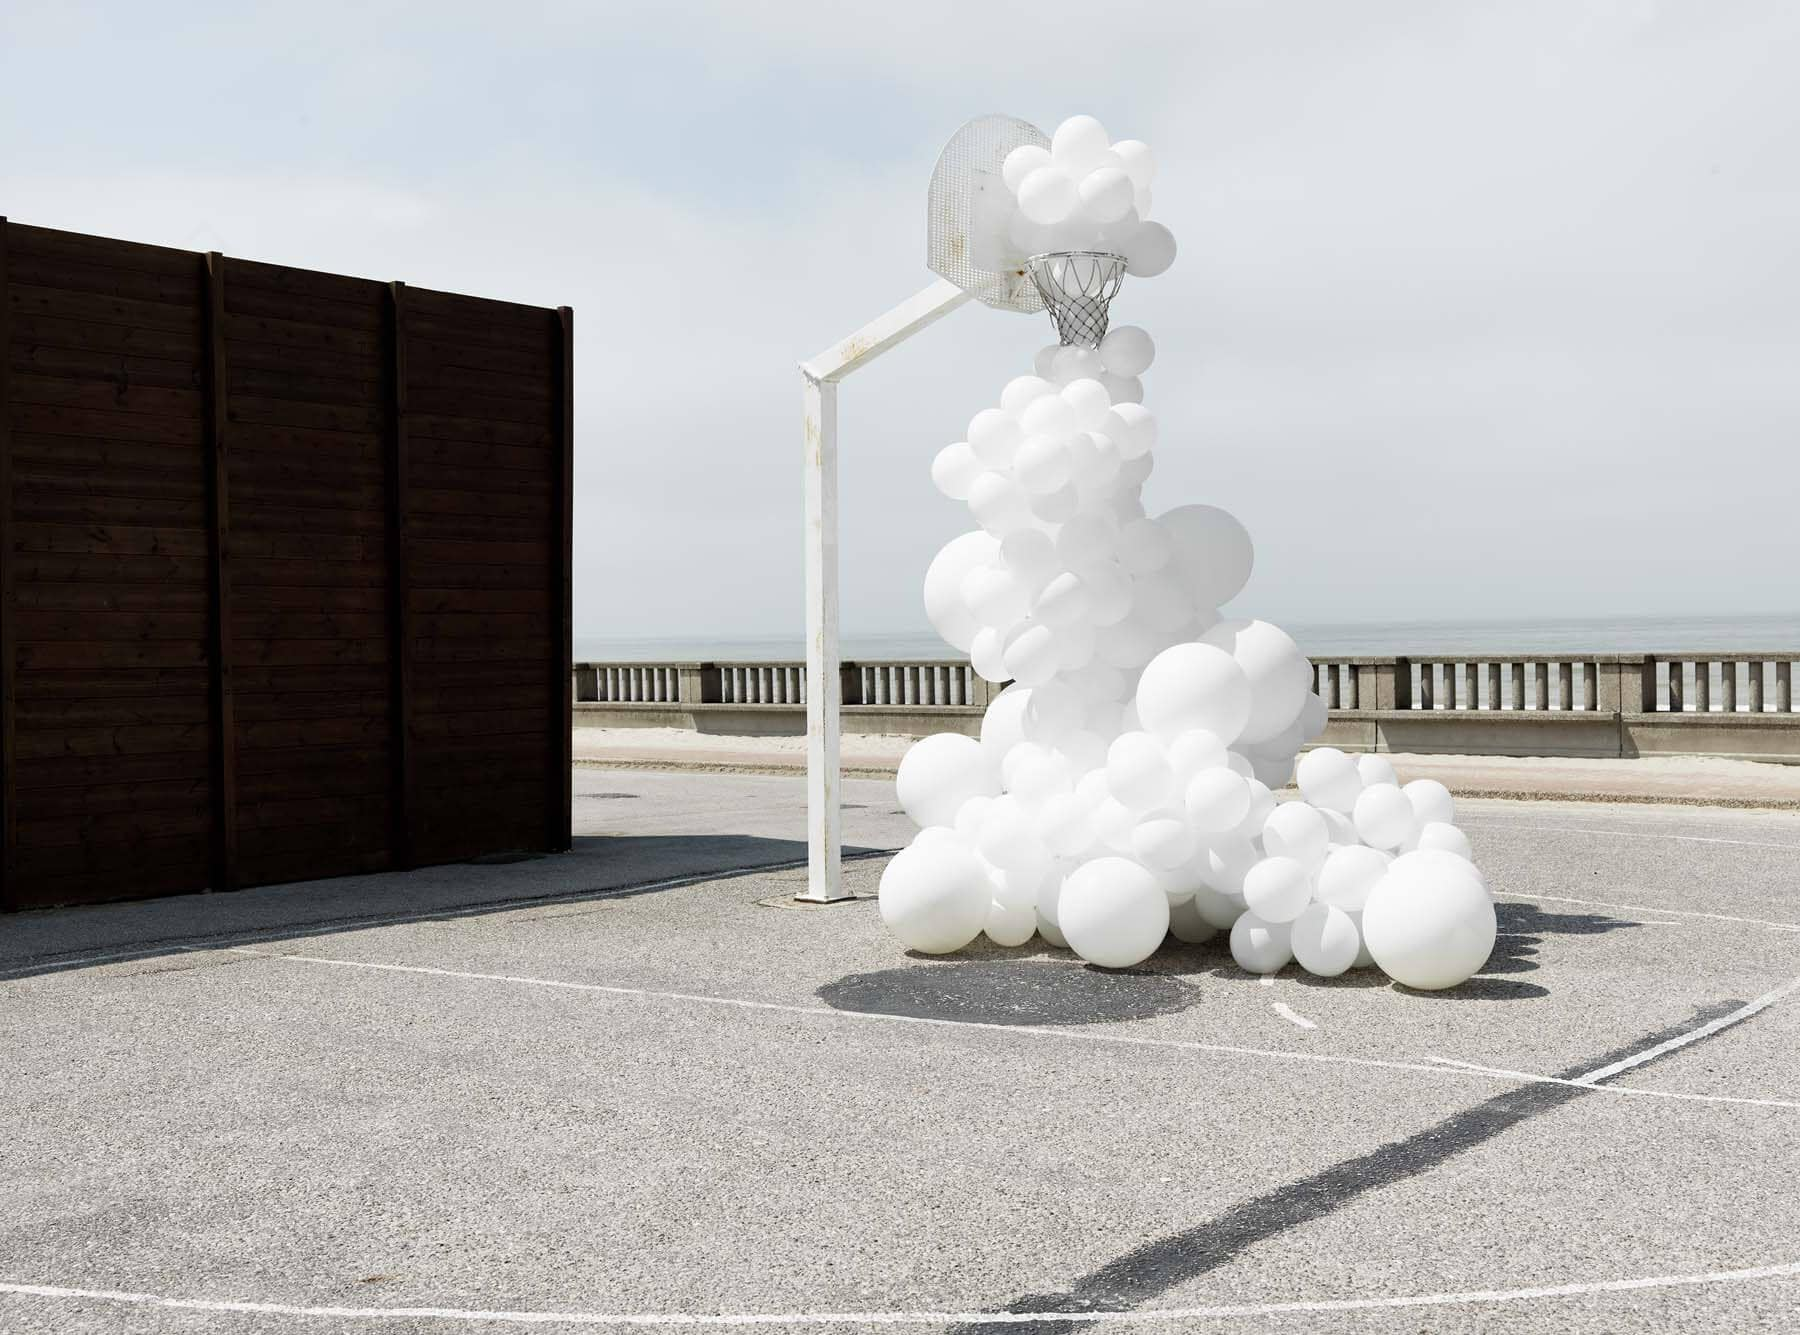 Clumps of Balloons Photographed Invading Landscapes by Charles Pétillon -multiples, installation, balloons